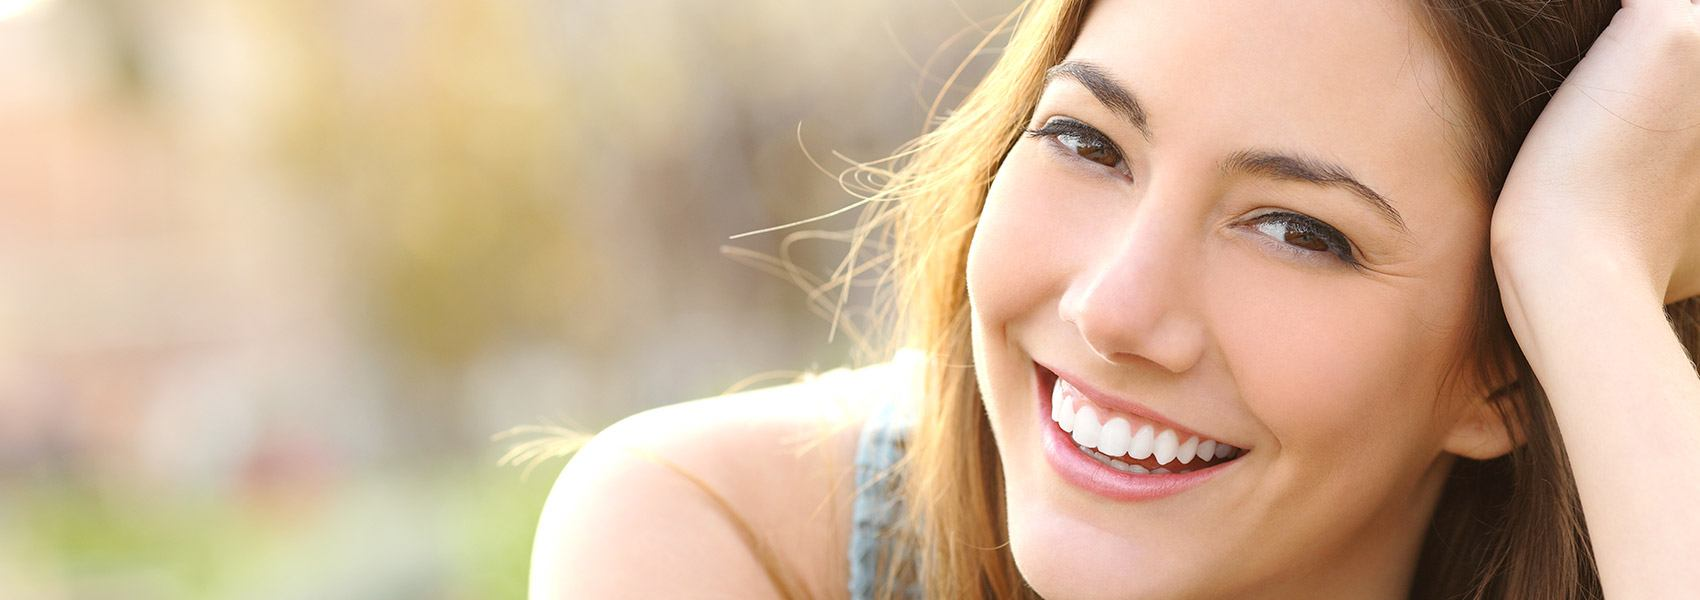 Find our services to get a beautiful smile with Thompson Dental